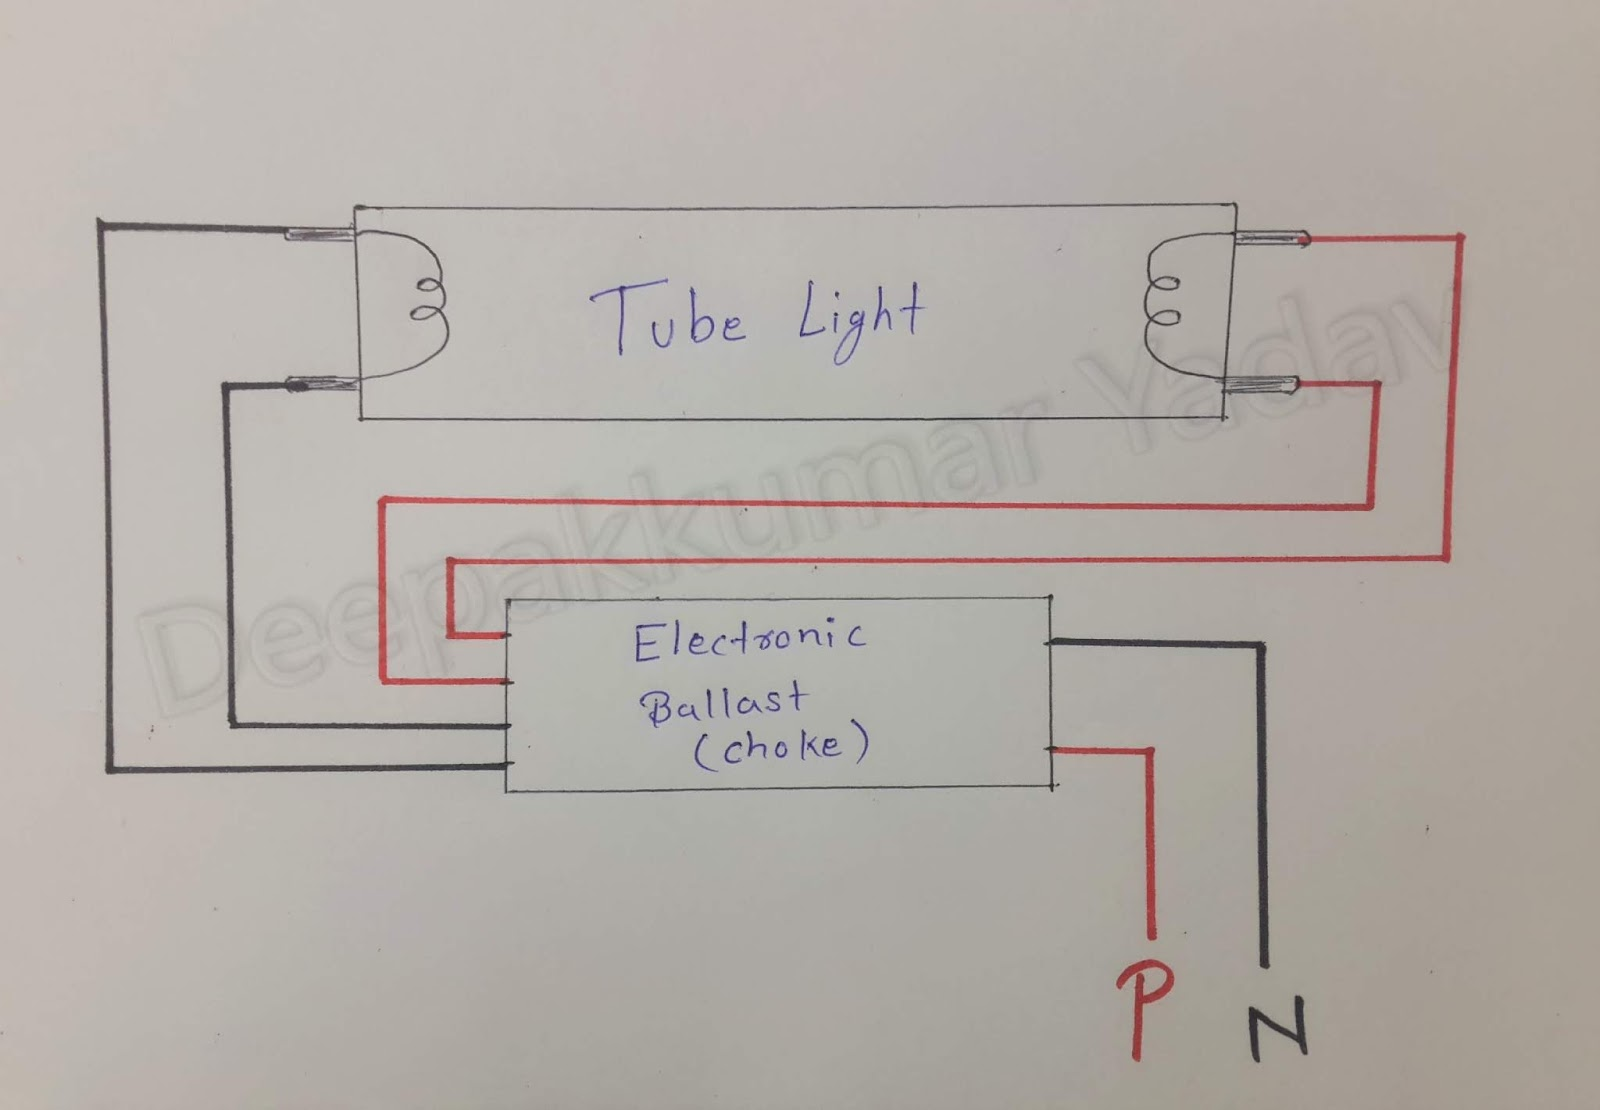 Tube Light Wiring Connection with Diagram (Electrical ...